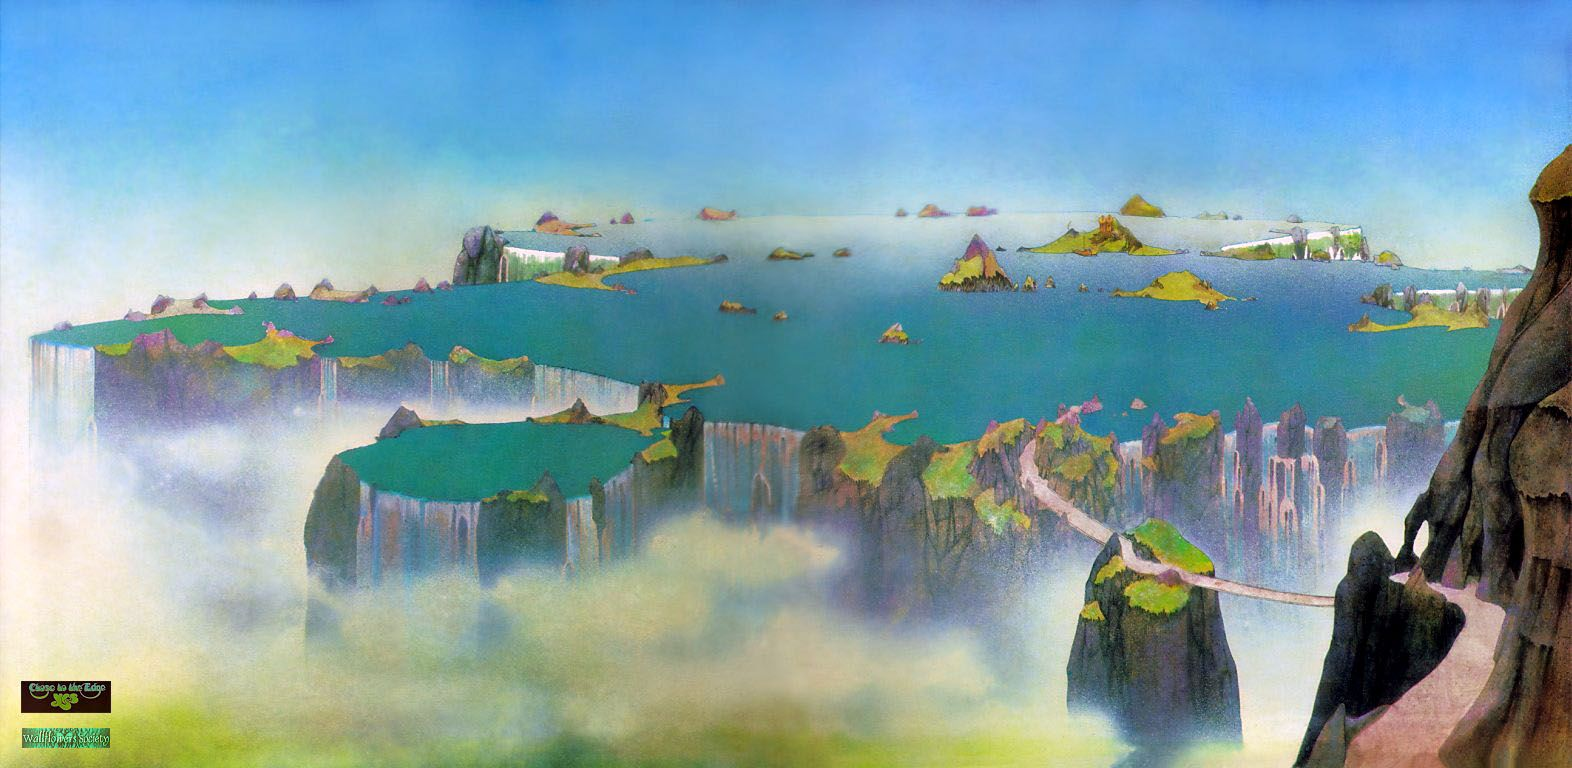 My Top 10 Favorite Yes Album Covers Roger Dean Yes Album Covers